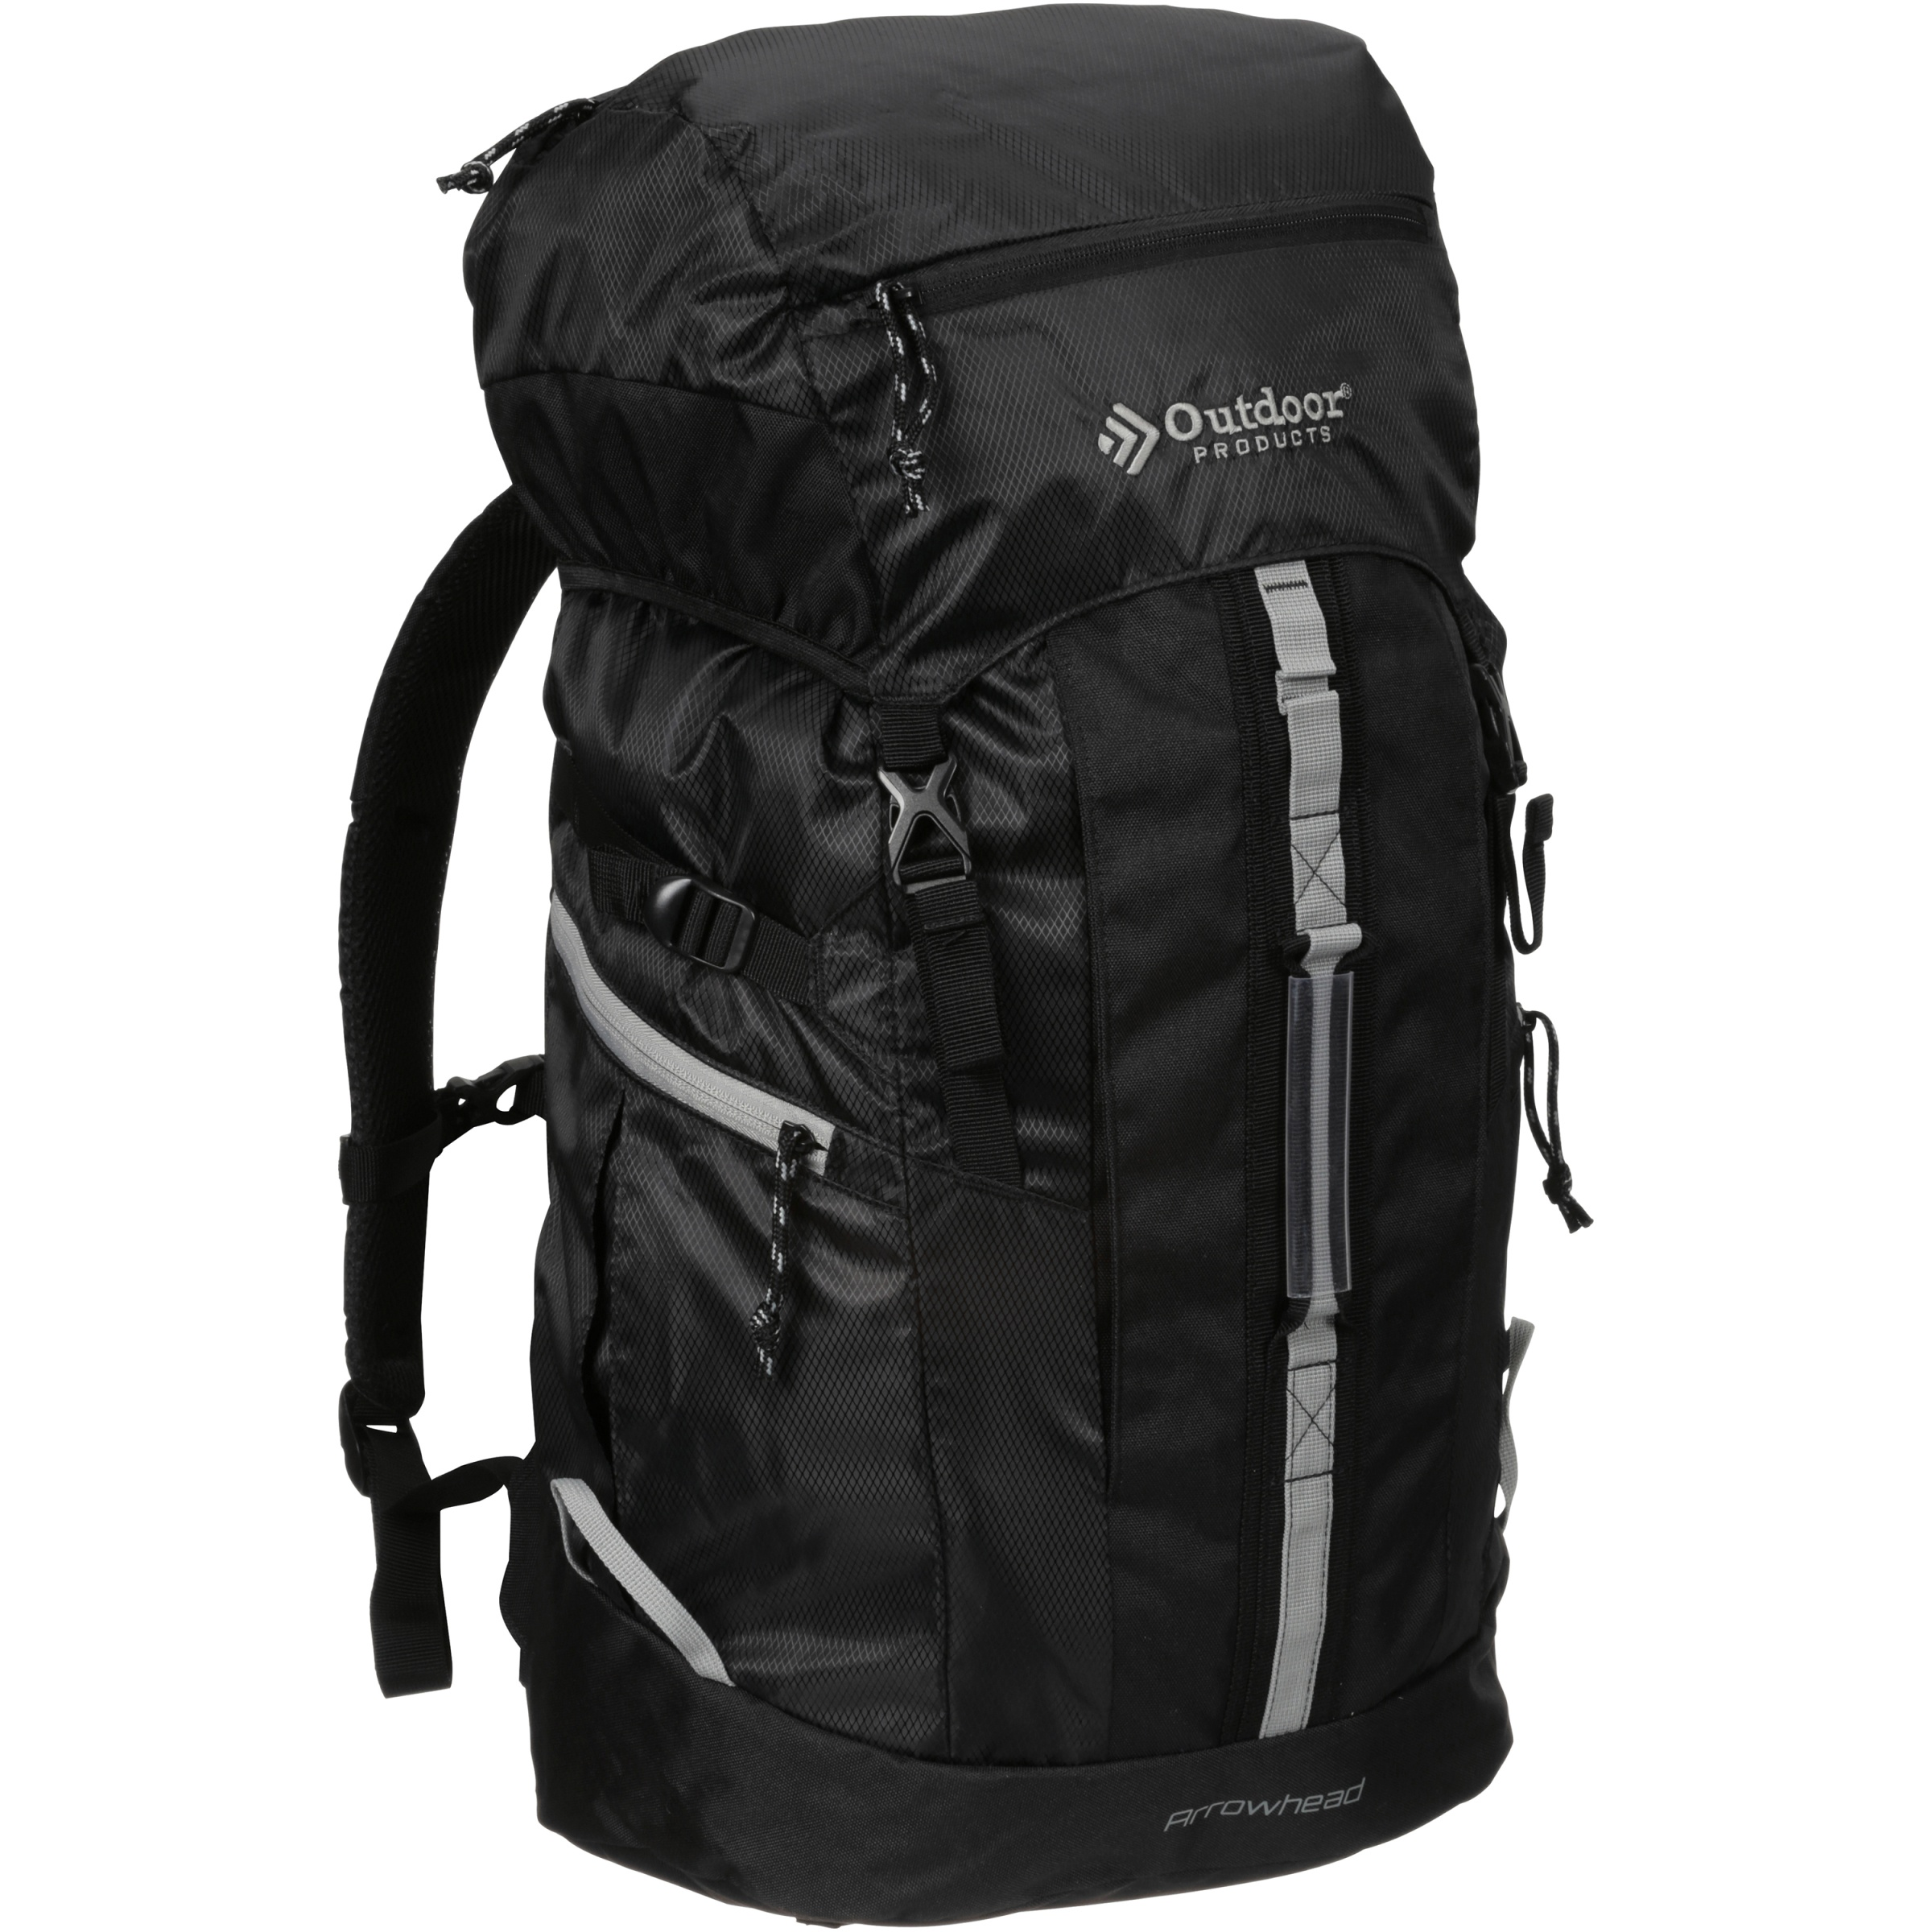 Outdoor Products Arrowhead 8.0 Internal Frame Pack Camping Backpack